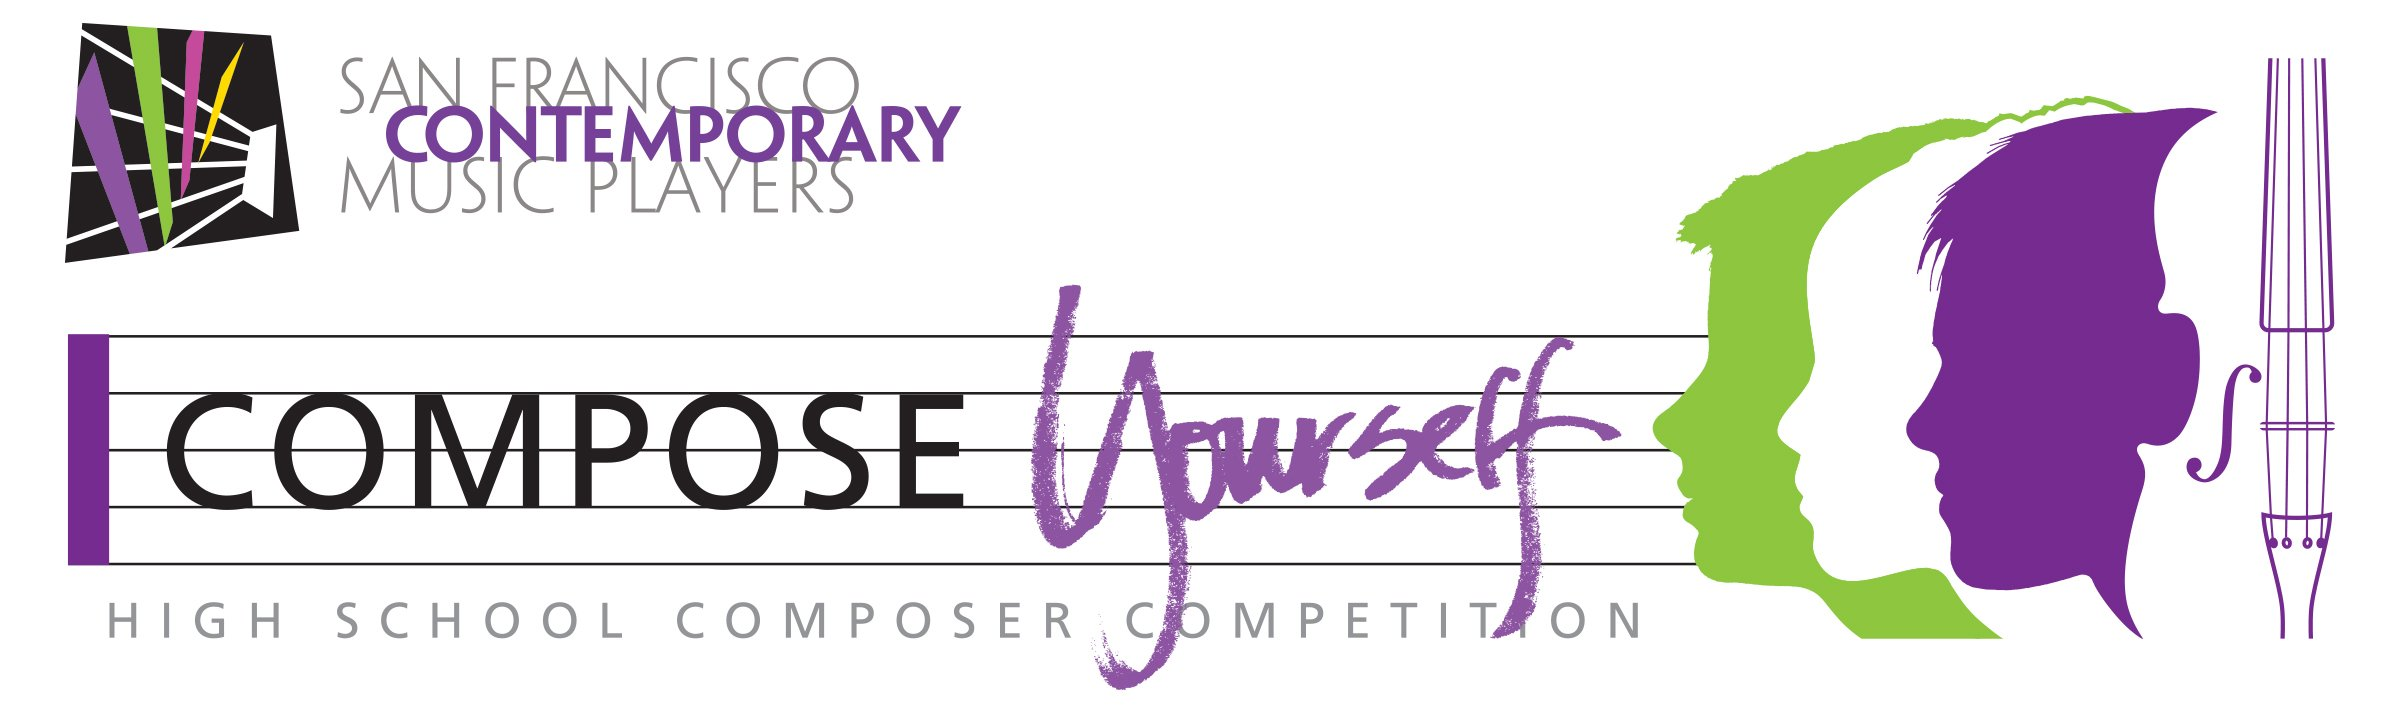 NEW Compose Yourself logo 4c